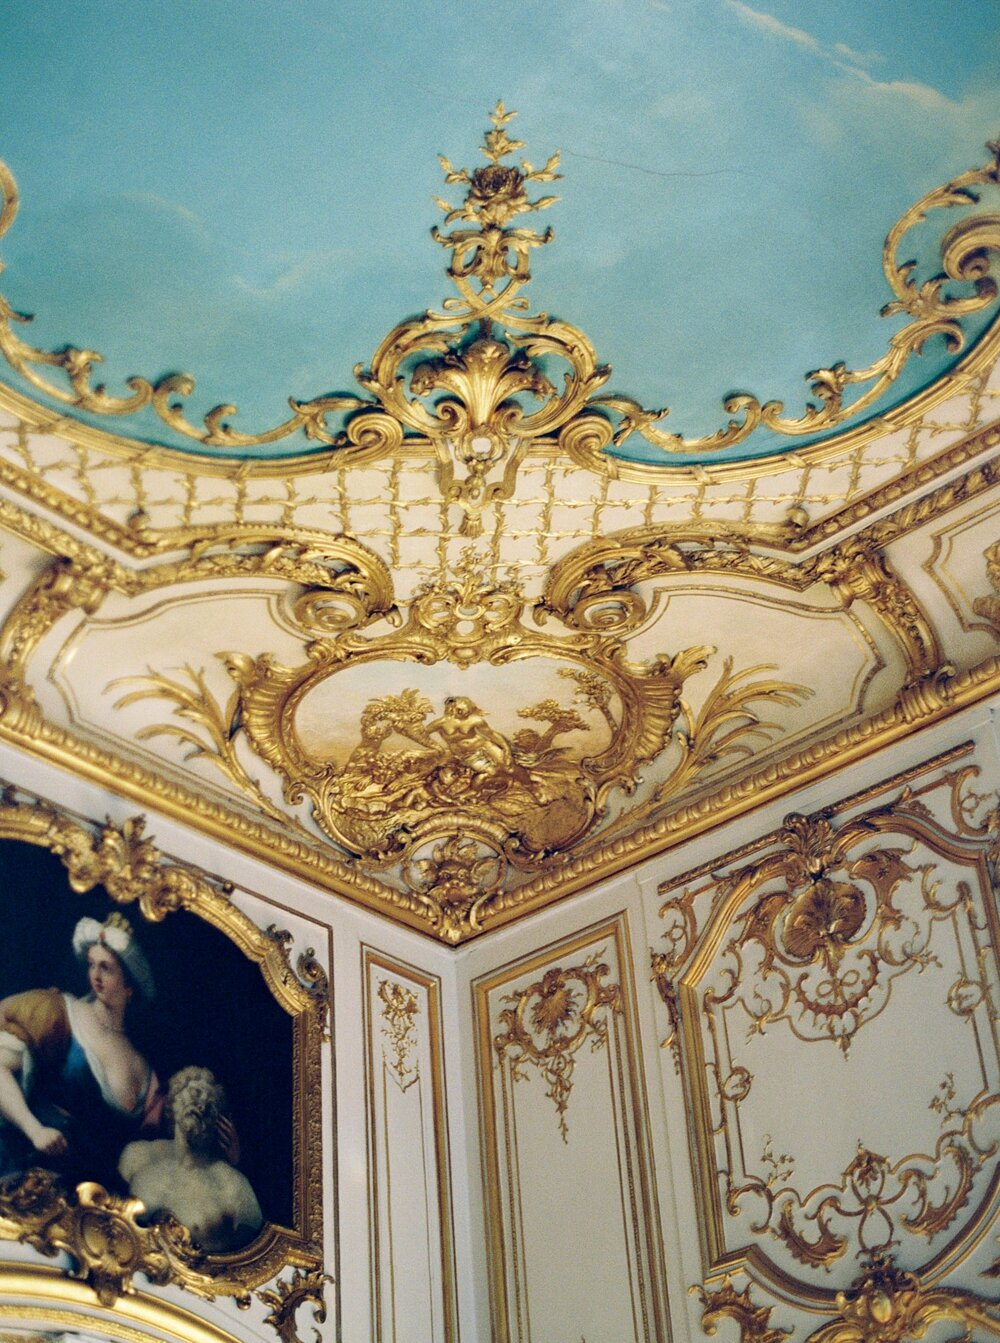 ceiling and wall details in the corner of the ballroom at the Hotel Le Marois in Paris, France